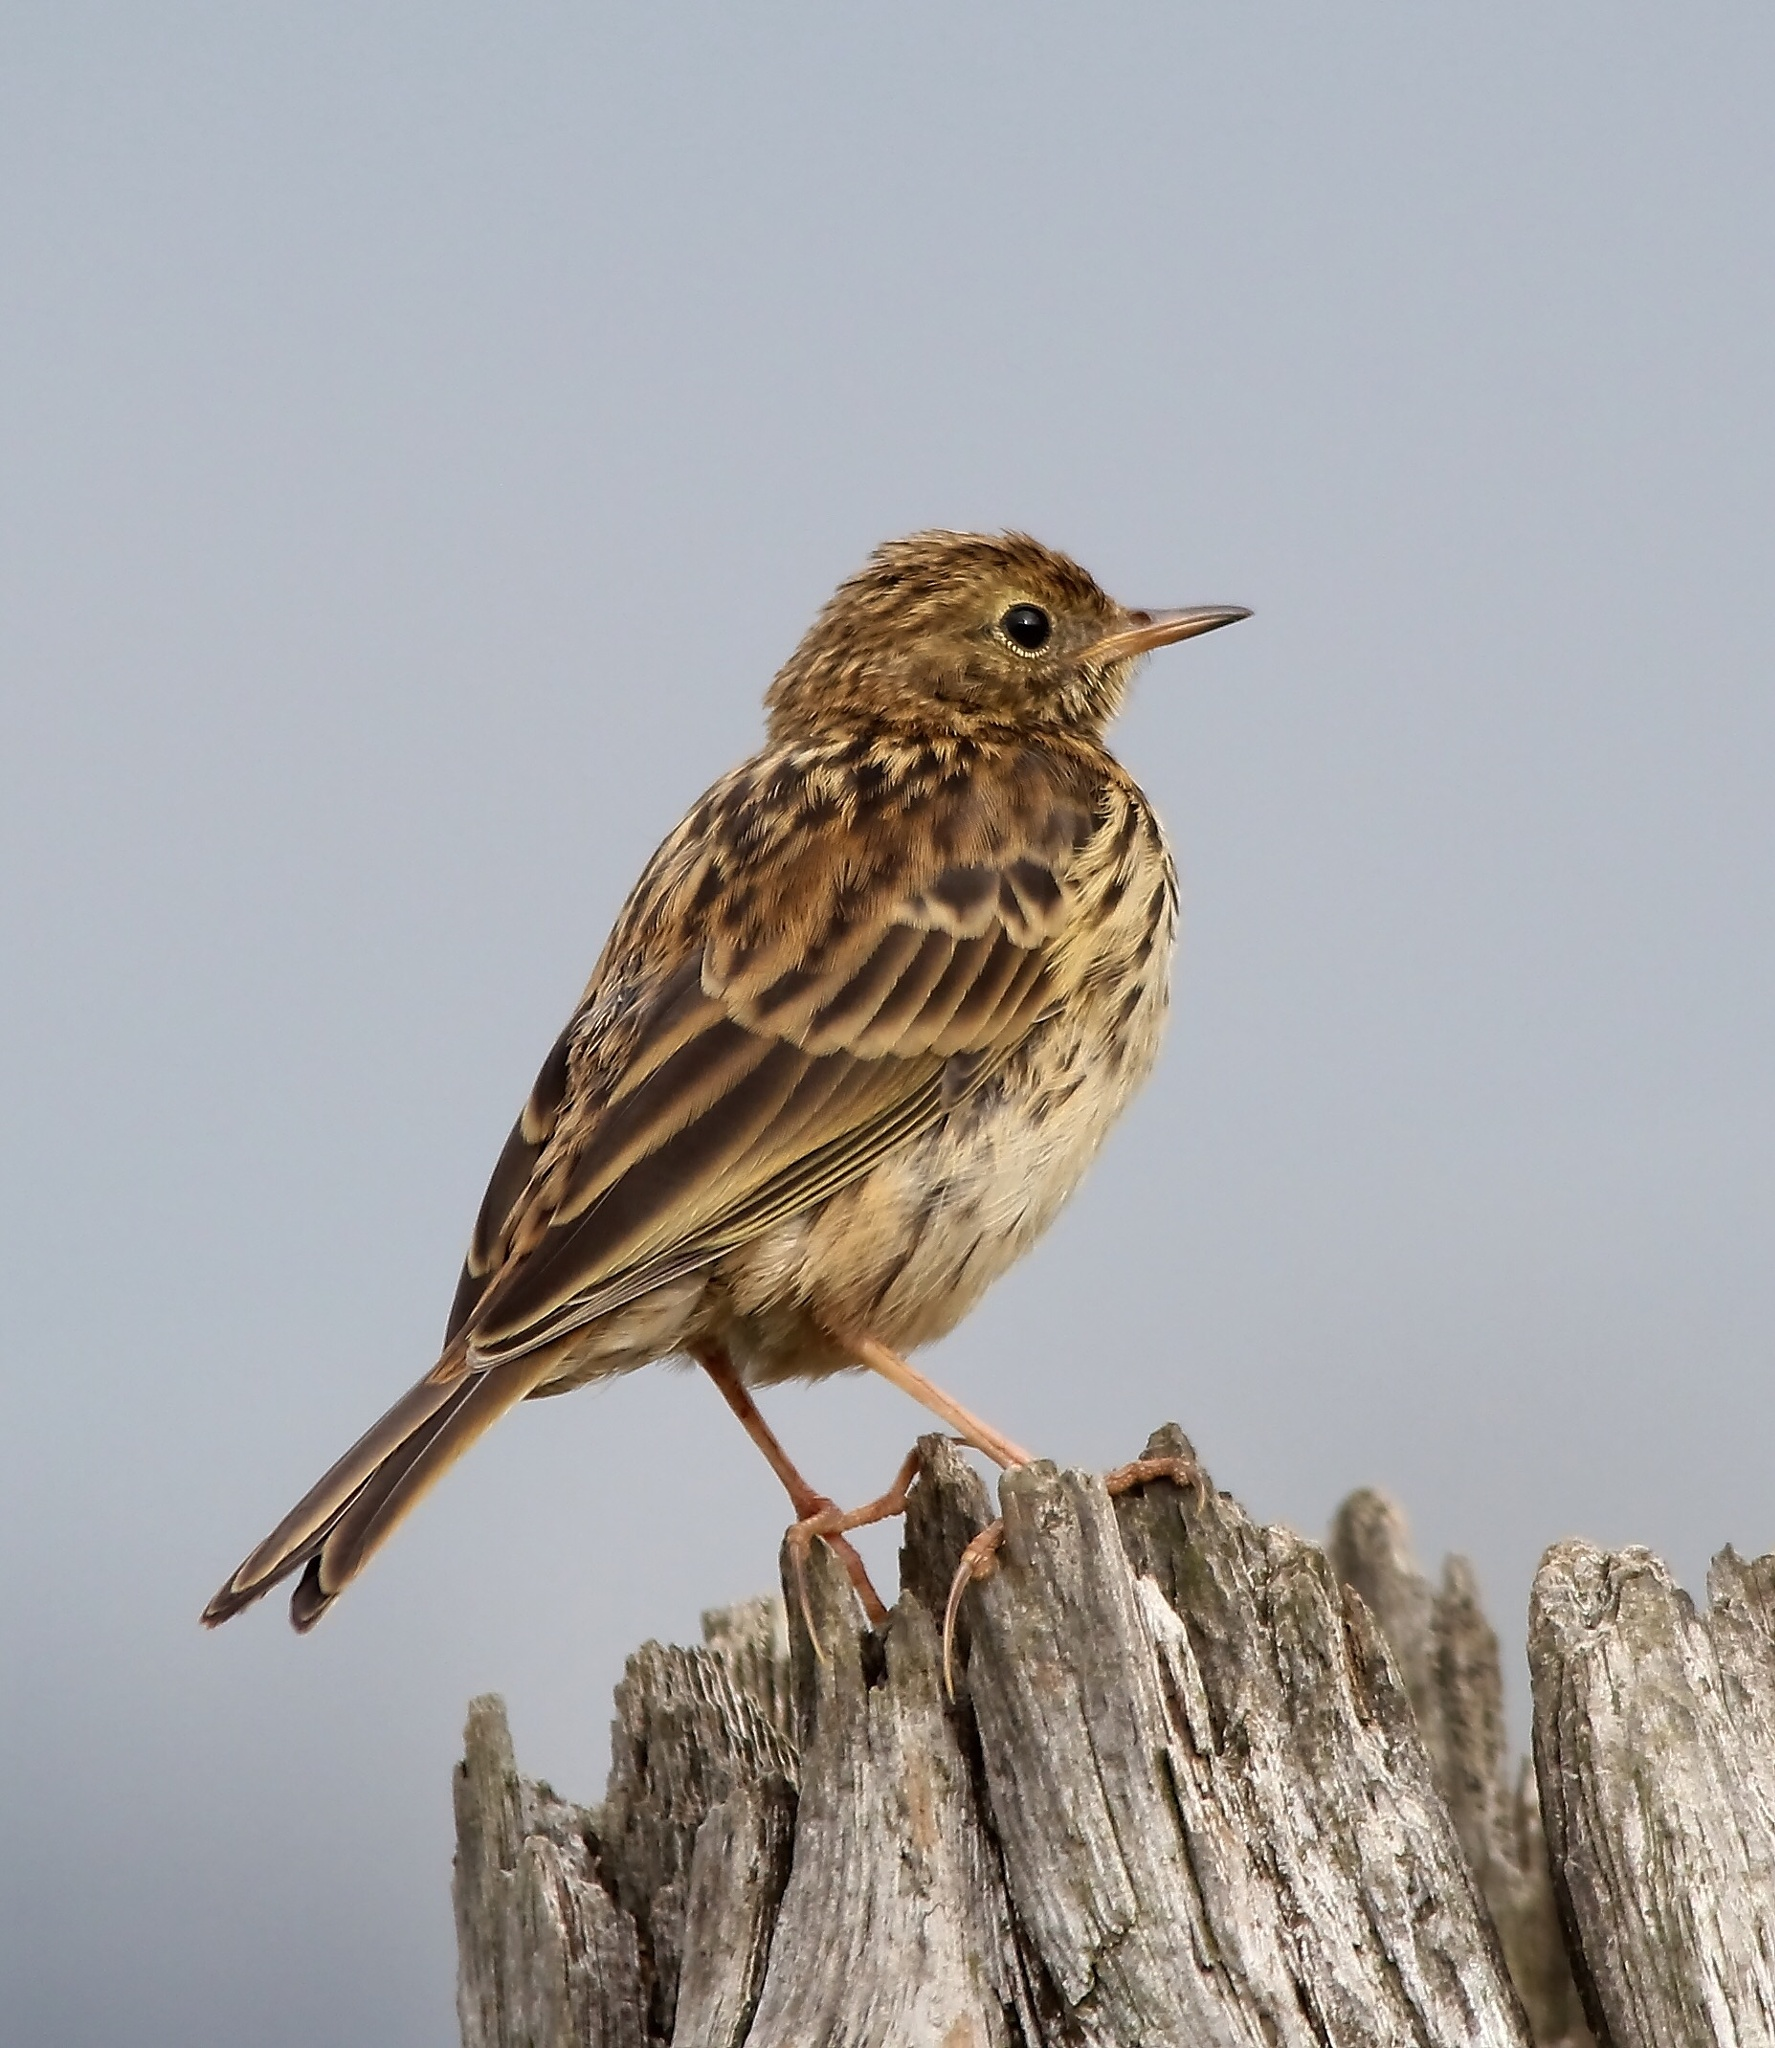 Meadow Pipit by annecotton